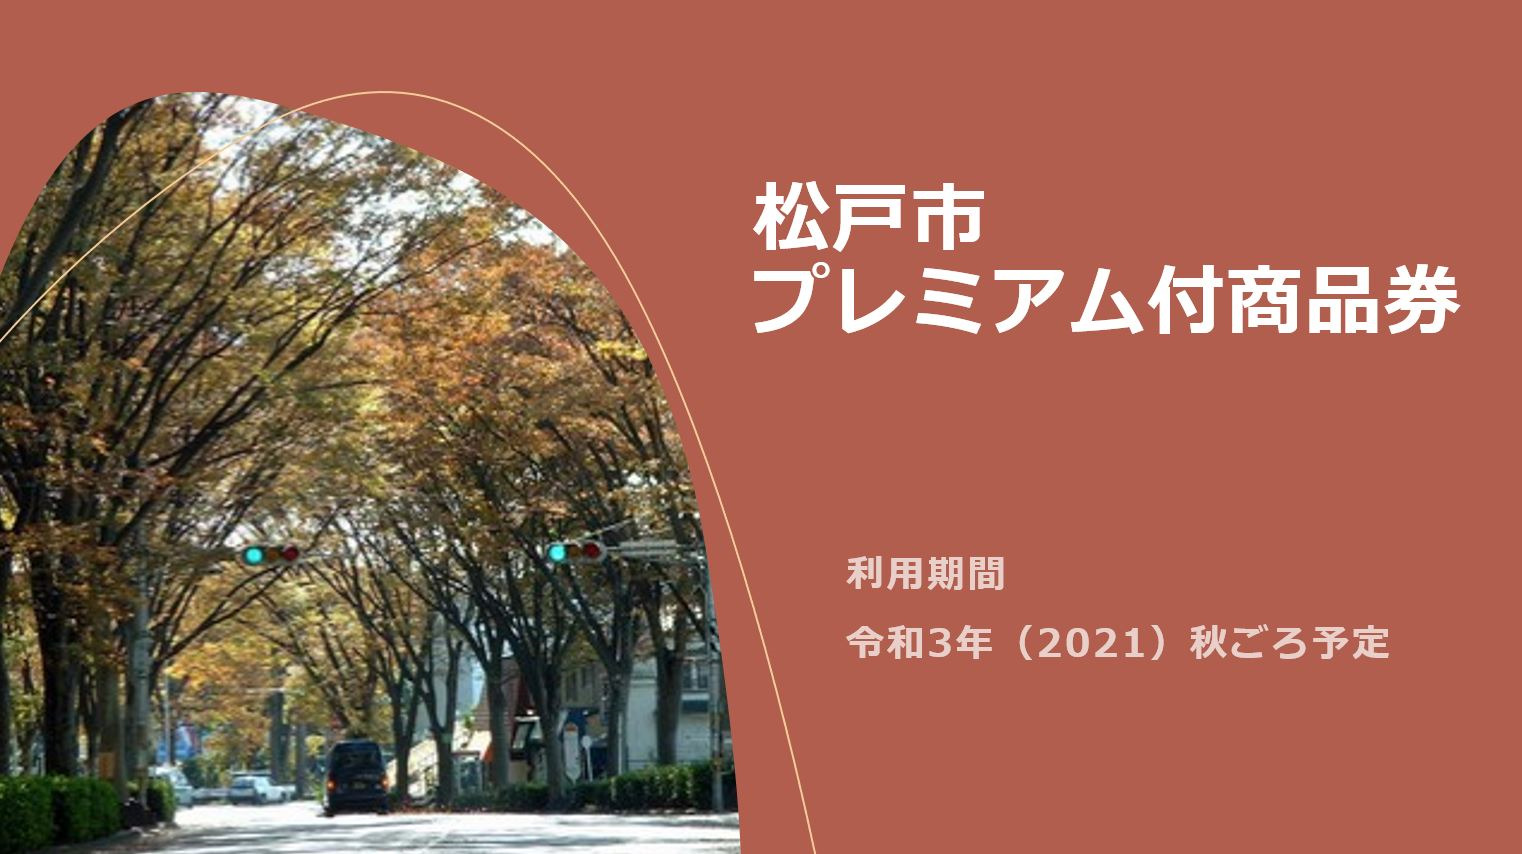 Read more about the article 当店で松戸市プレミアム付き商品券in2021が使えます!